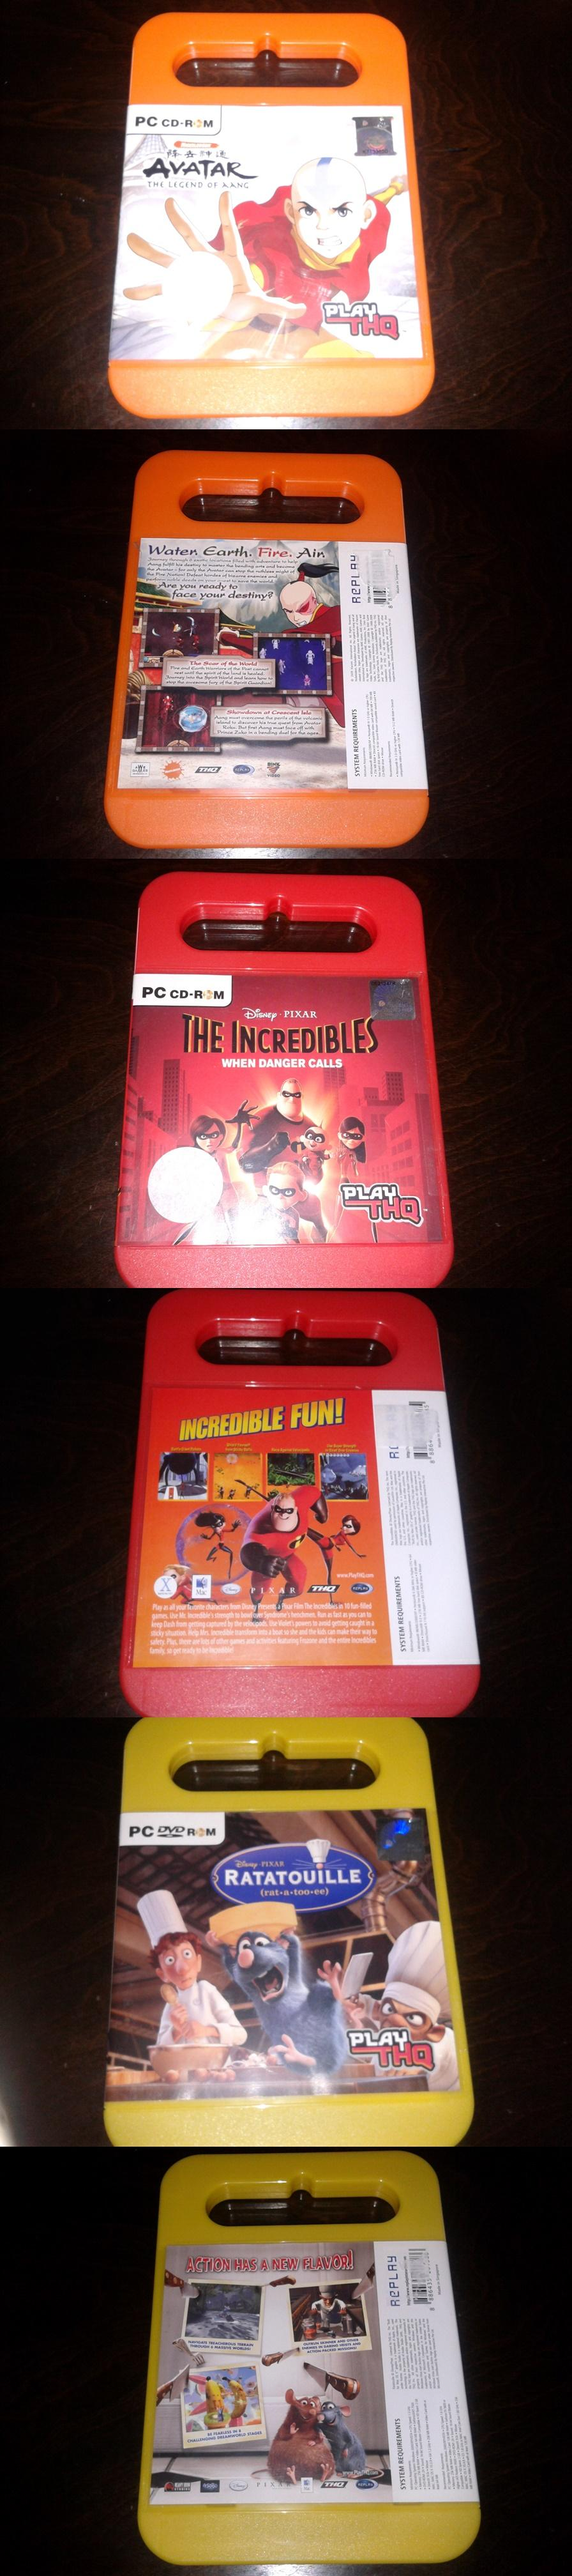 The Incredibles Ratatouille Avatar The Legend of Aang Ori PCD-ROM